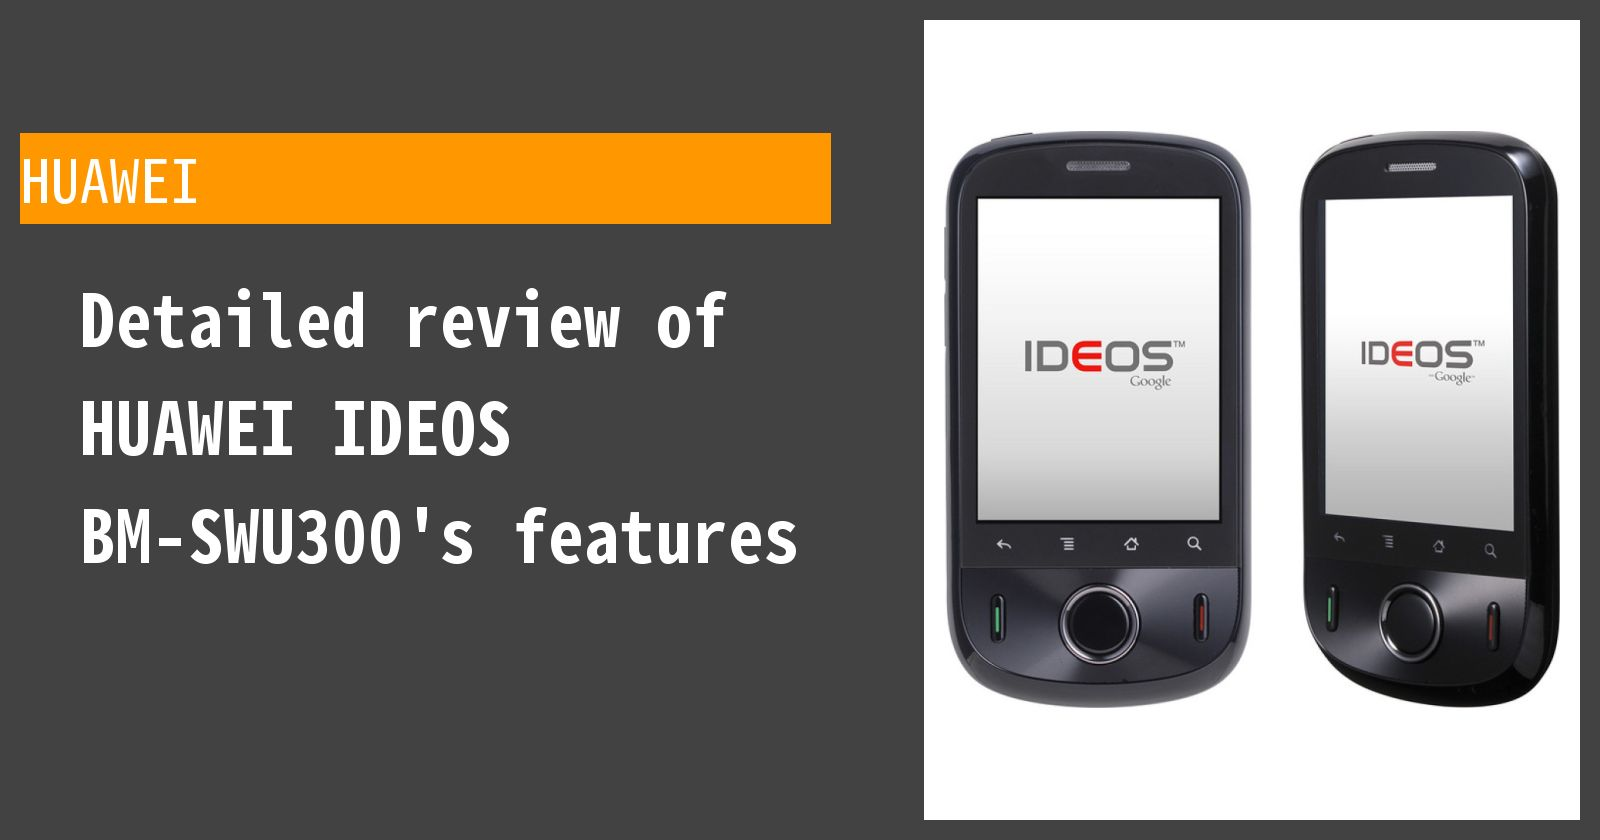 Detailed review of HUAWEI IDEOS BM-SWU300's features